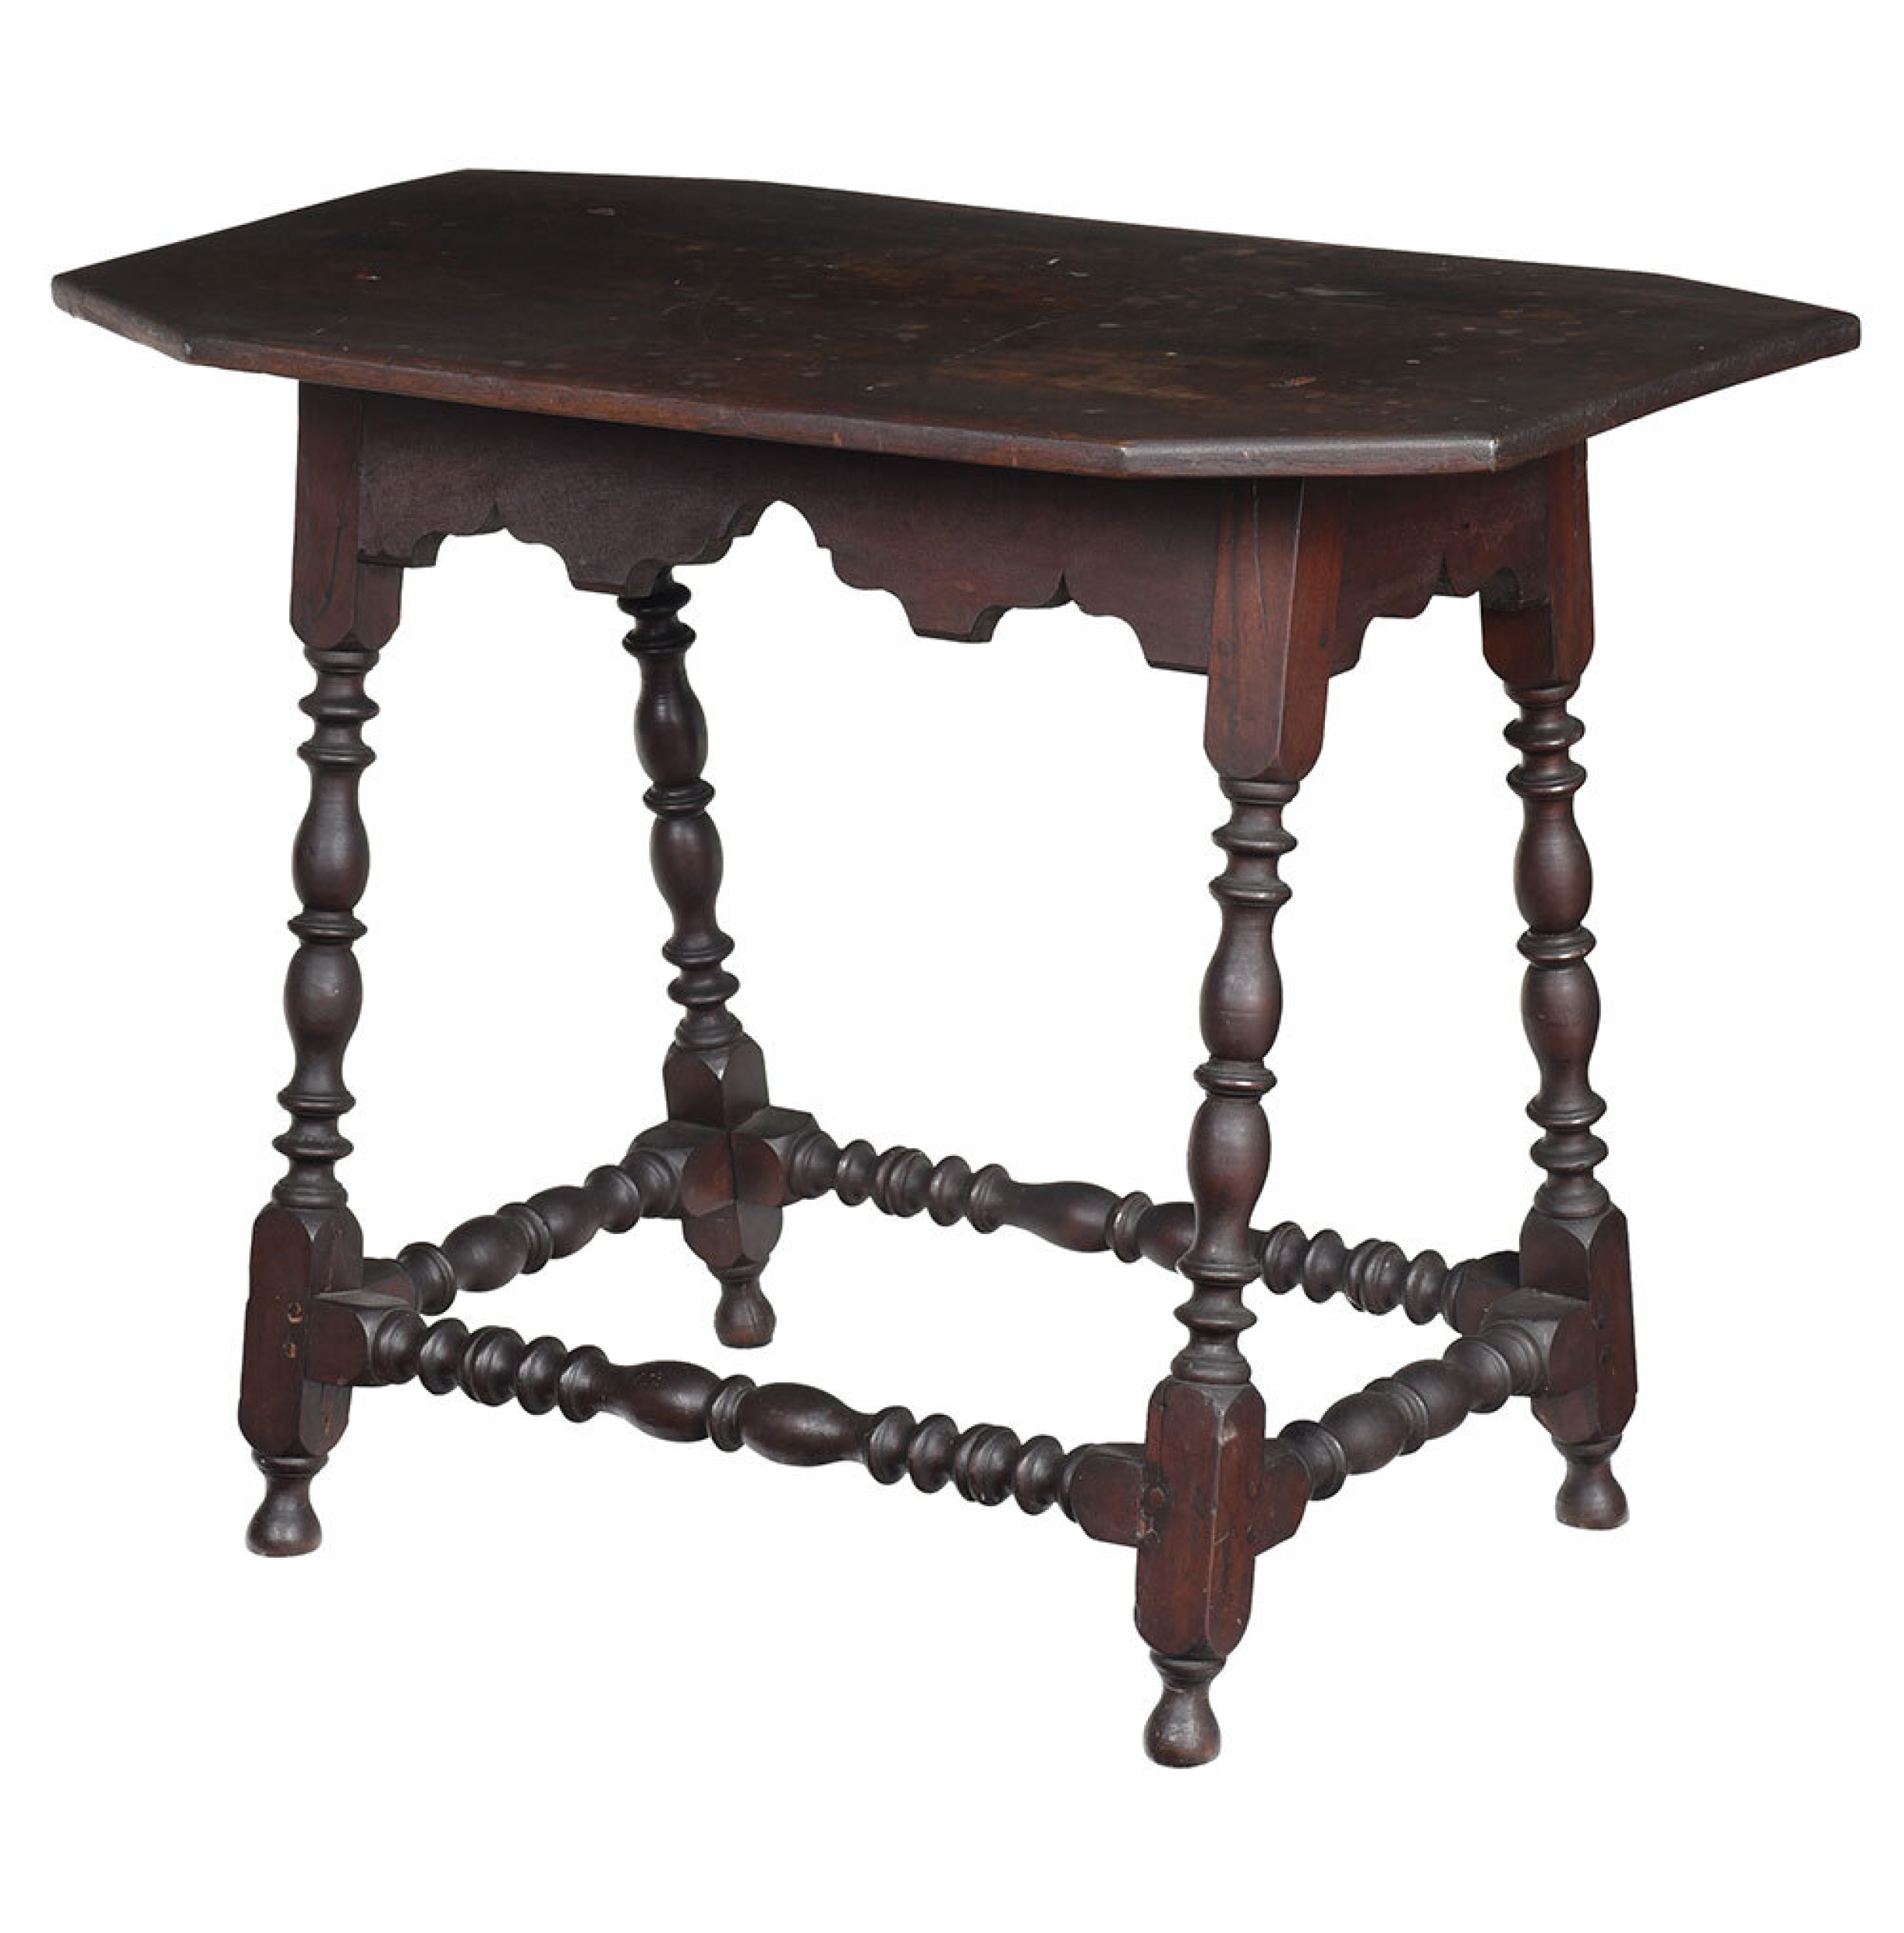 SOLD: $135,300 Fine Rare American William and Mary Table